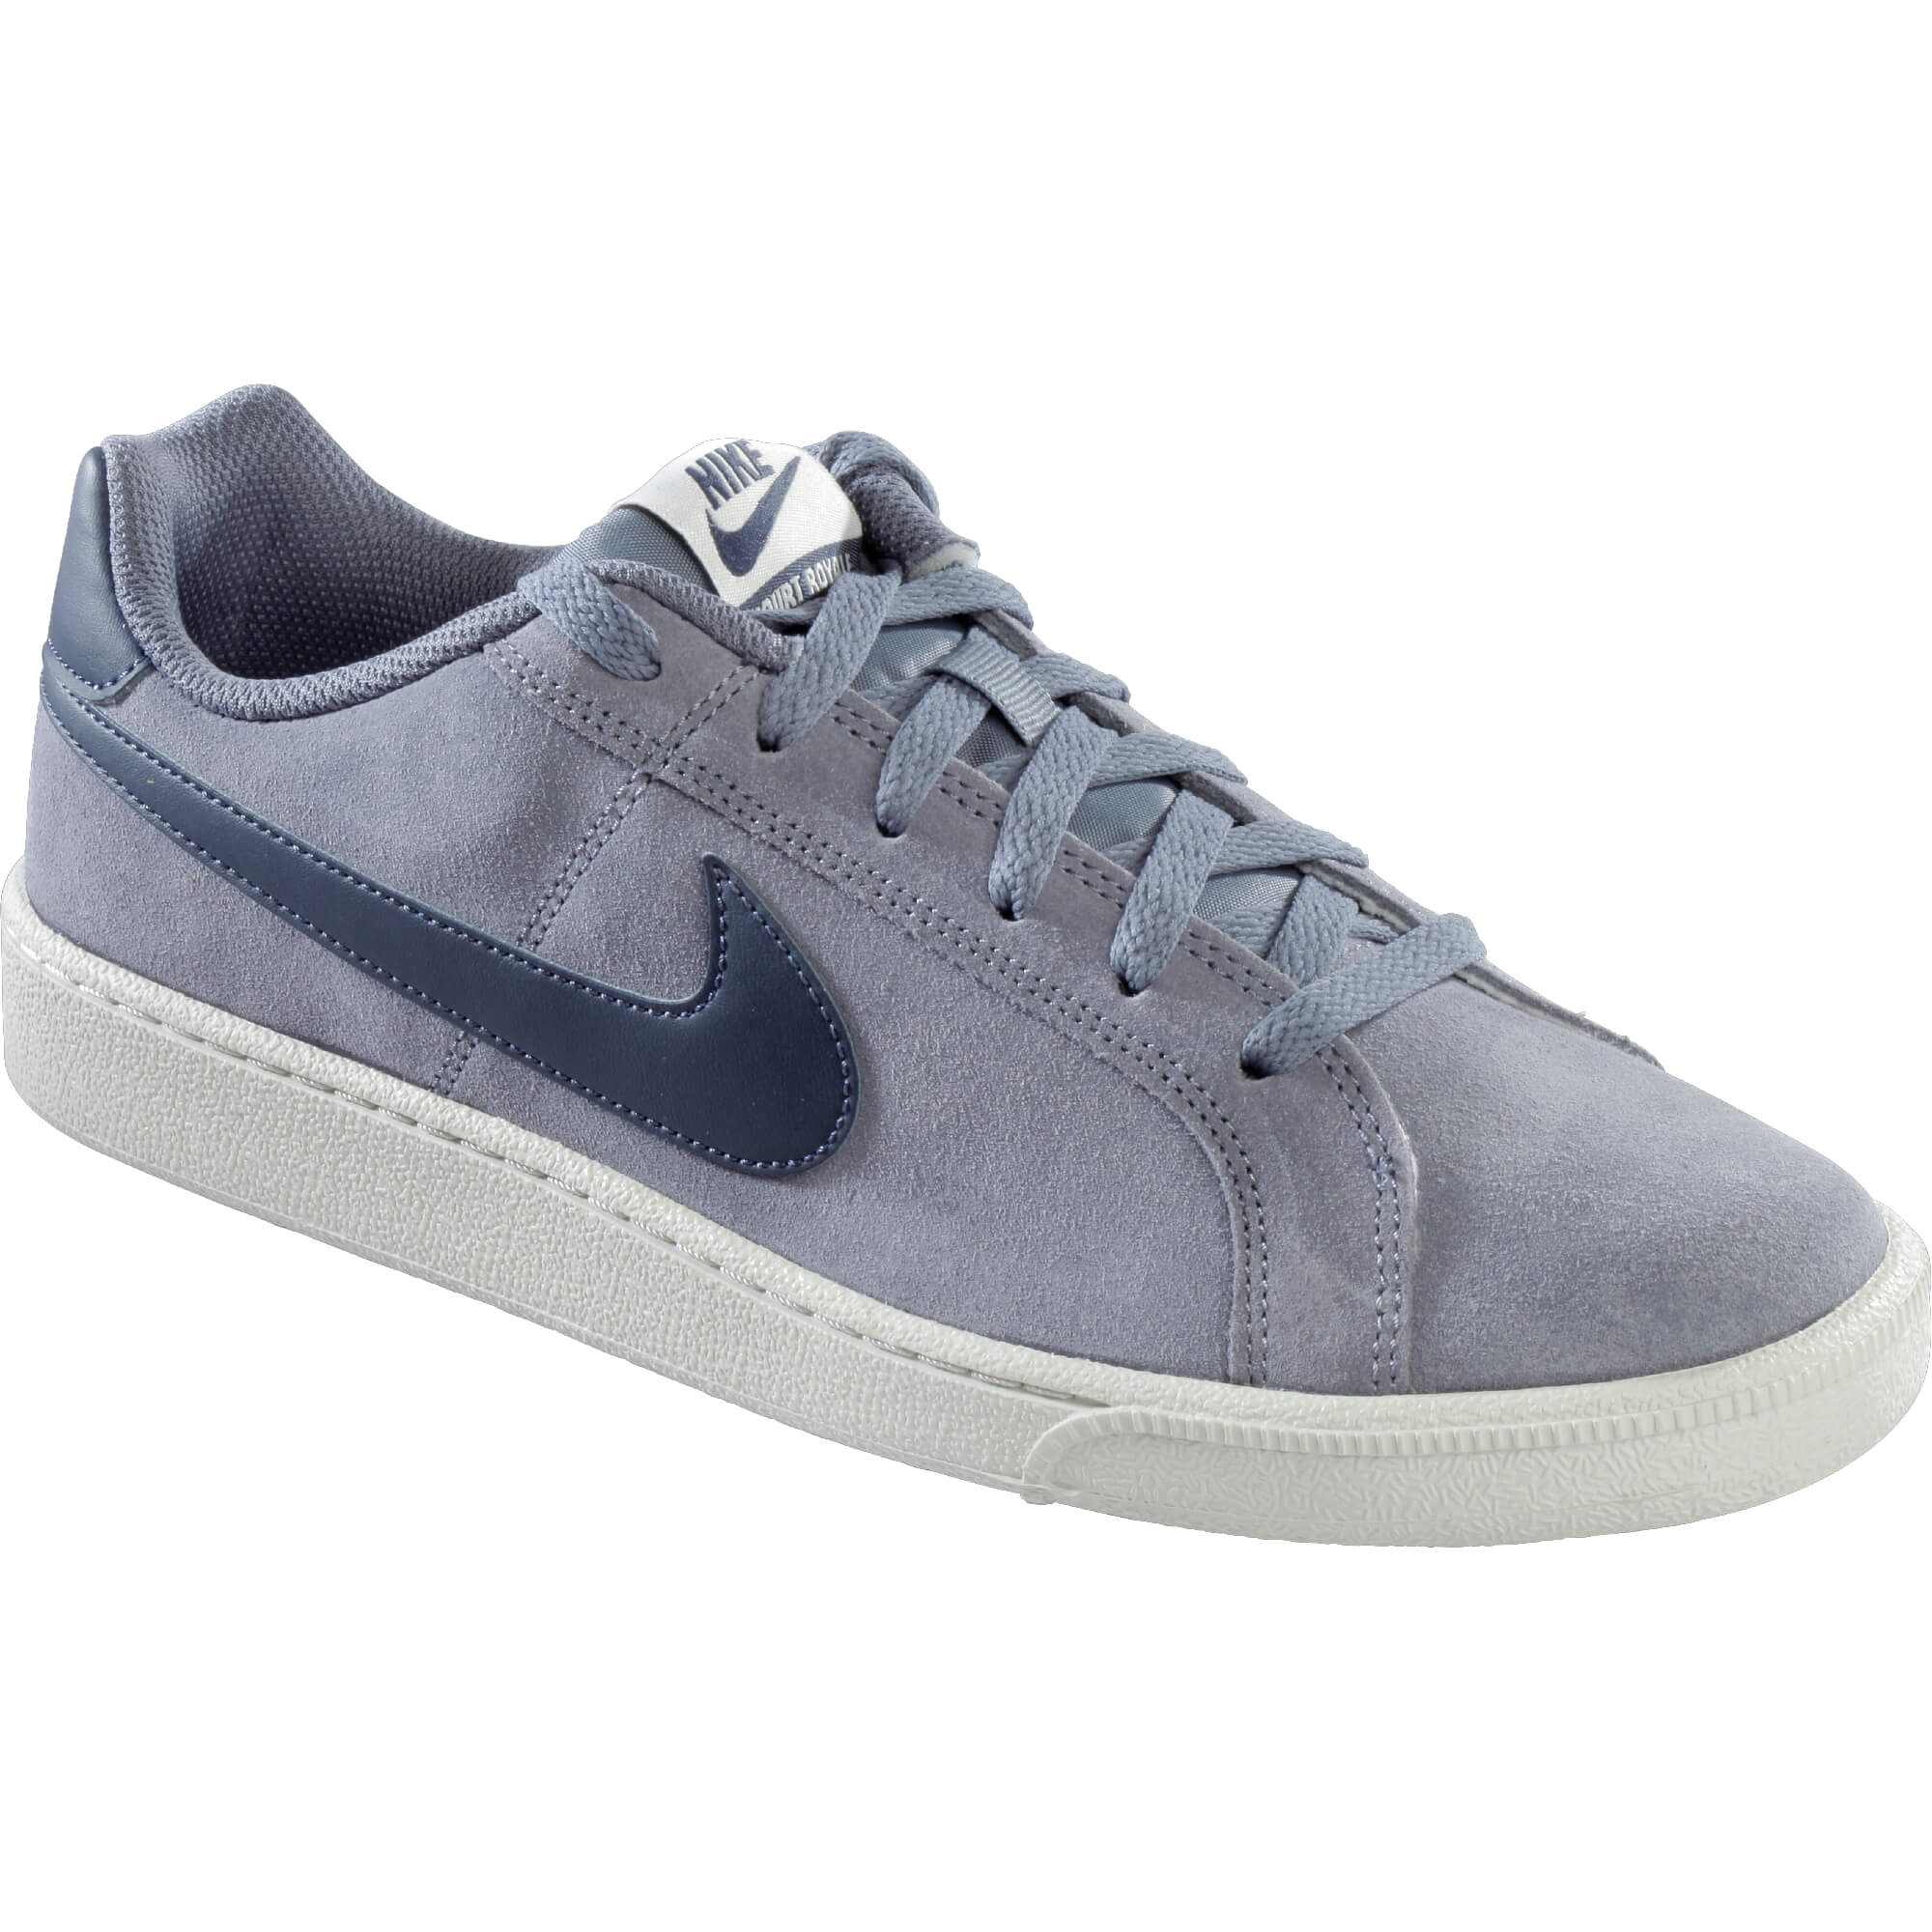 Nike Court Royale Suede, vel. 45